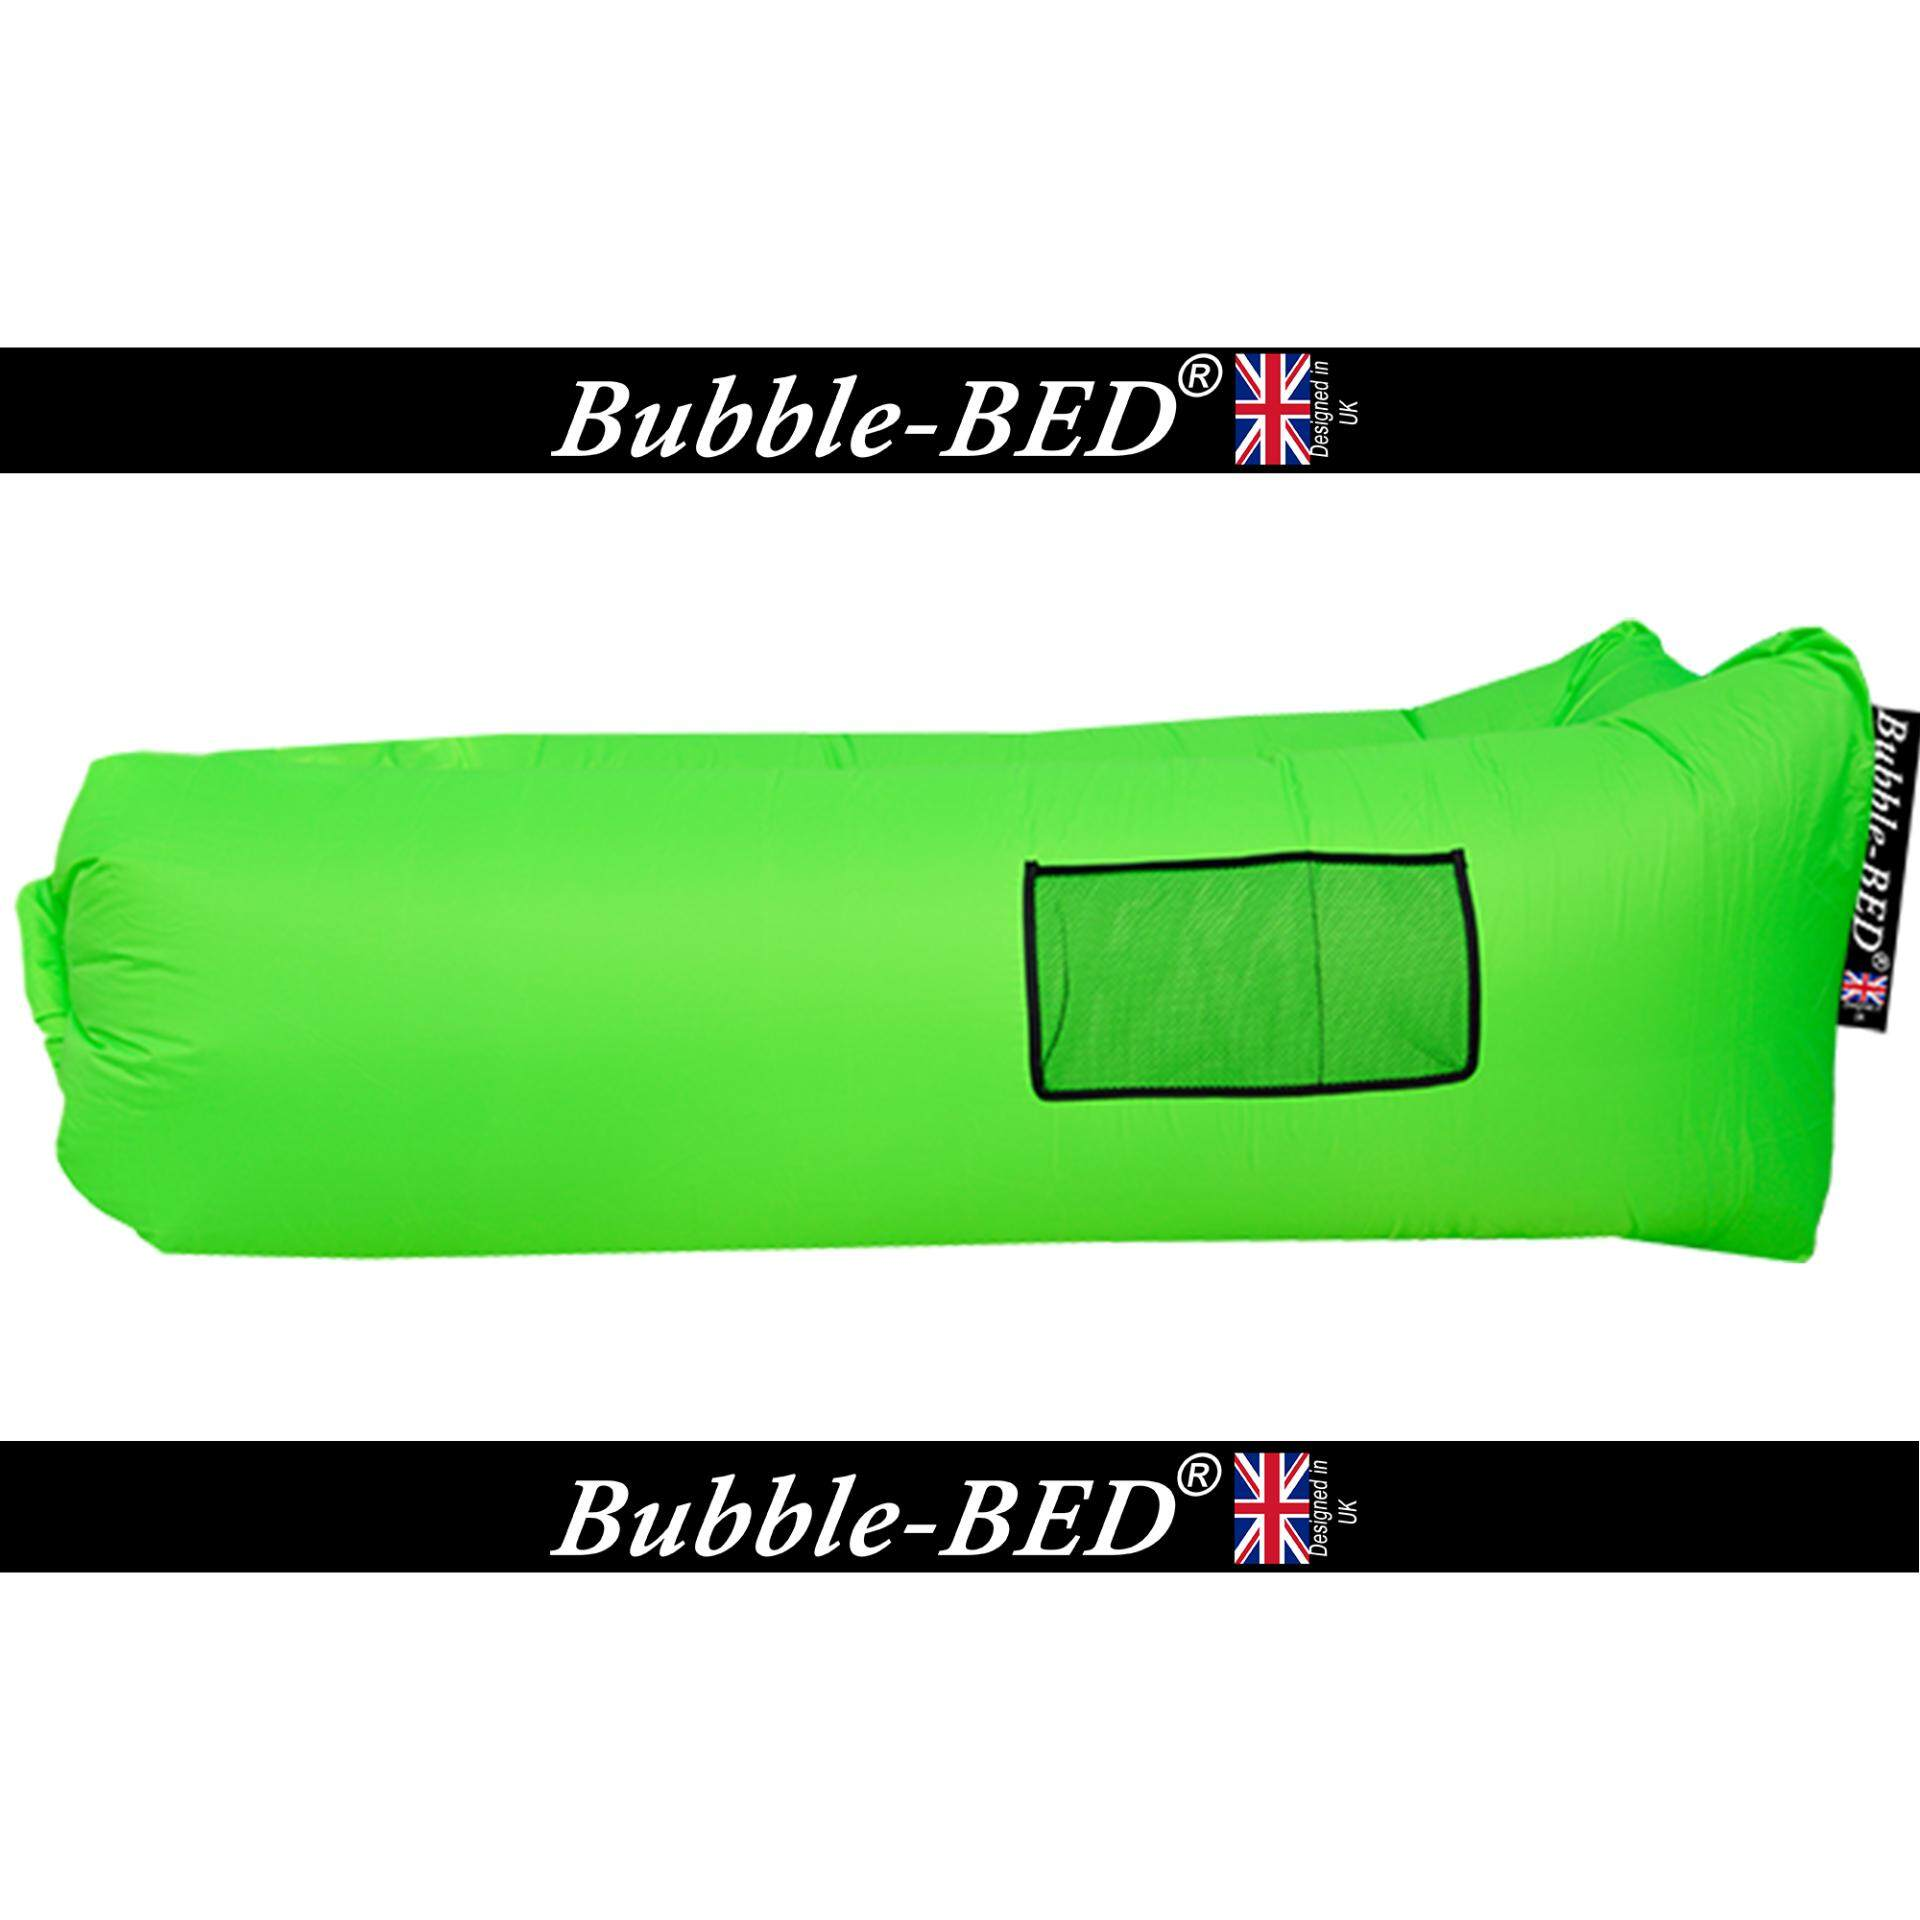 Bubble BED® Original – instant inflatable air sofa bed, lamzac style hangout camping bed, beach bed, air bed mattress, BEST QUALITY GUARANTEED โซฟาลม,ที่นอนลม, เก้าอี้ลม, ยอดนิยม,คุณภาพดี,โซฟาเป่าลม, ที่นอนพกพา, ที่นอนชายหาด,คุณภาพ, ที่นอนเป่าลม